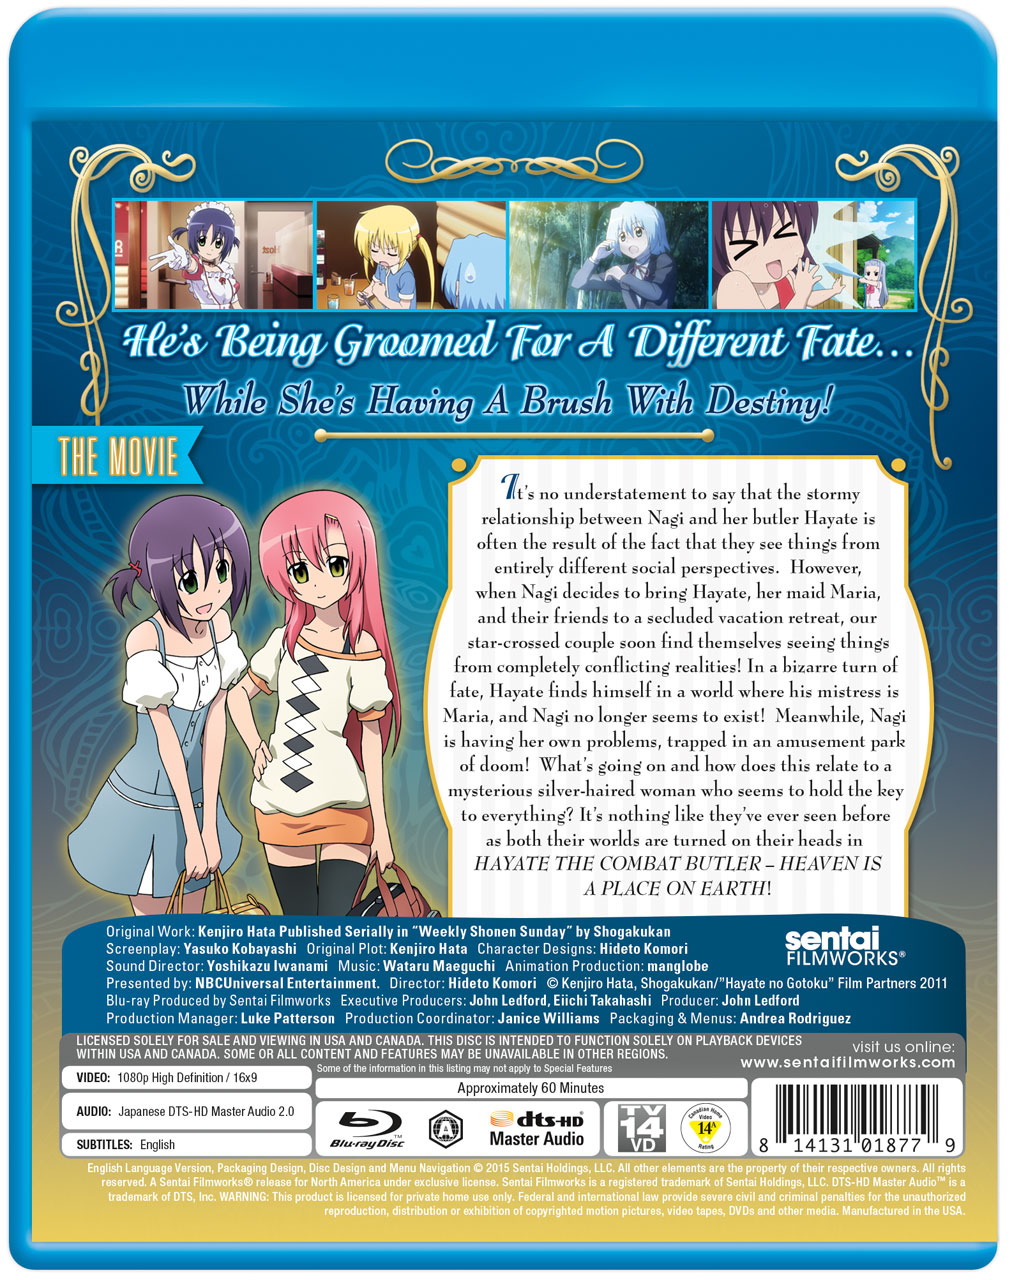 Hayate the Combat Butler Heaven is a Place on Earth Blu-ray